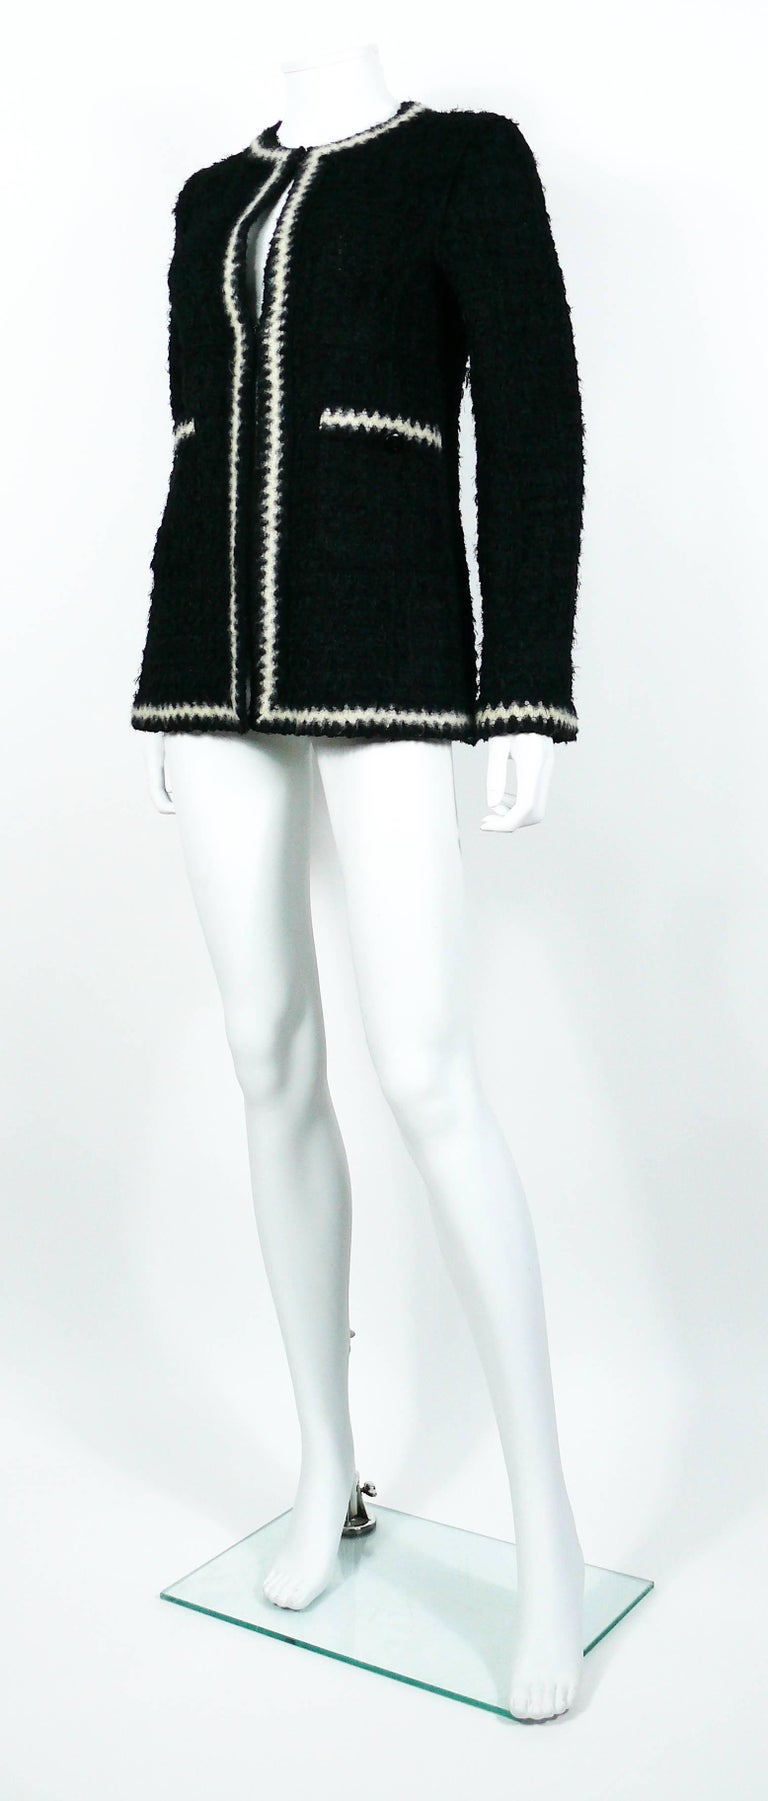 Chanel Vintage Fall 1998 Iconic Black & White Trim Boucle Cardigan Jacket For Sale 2